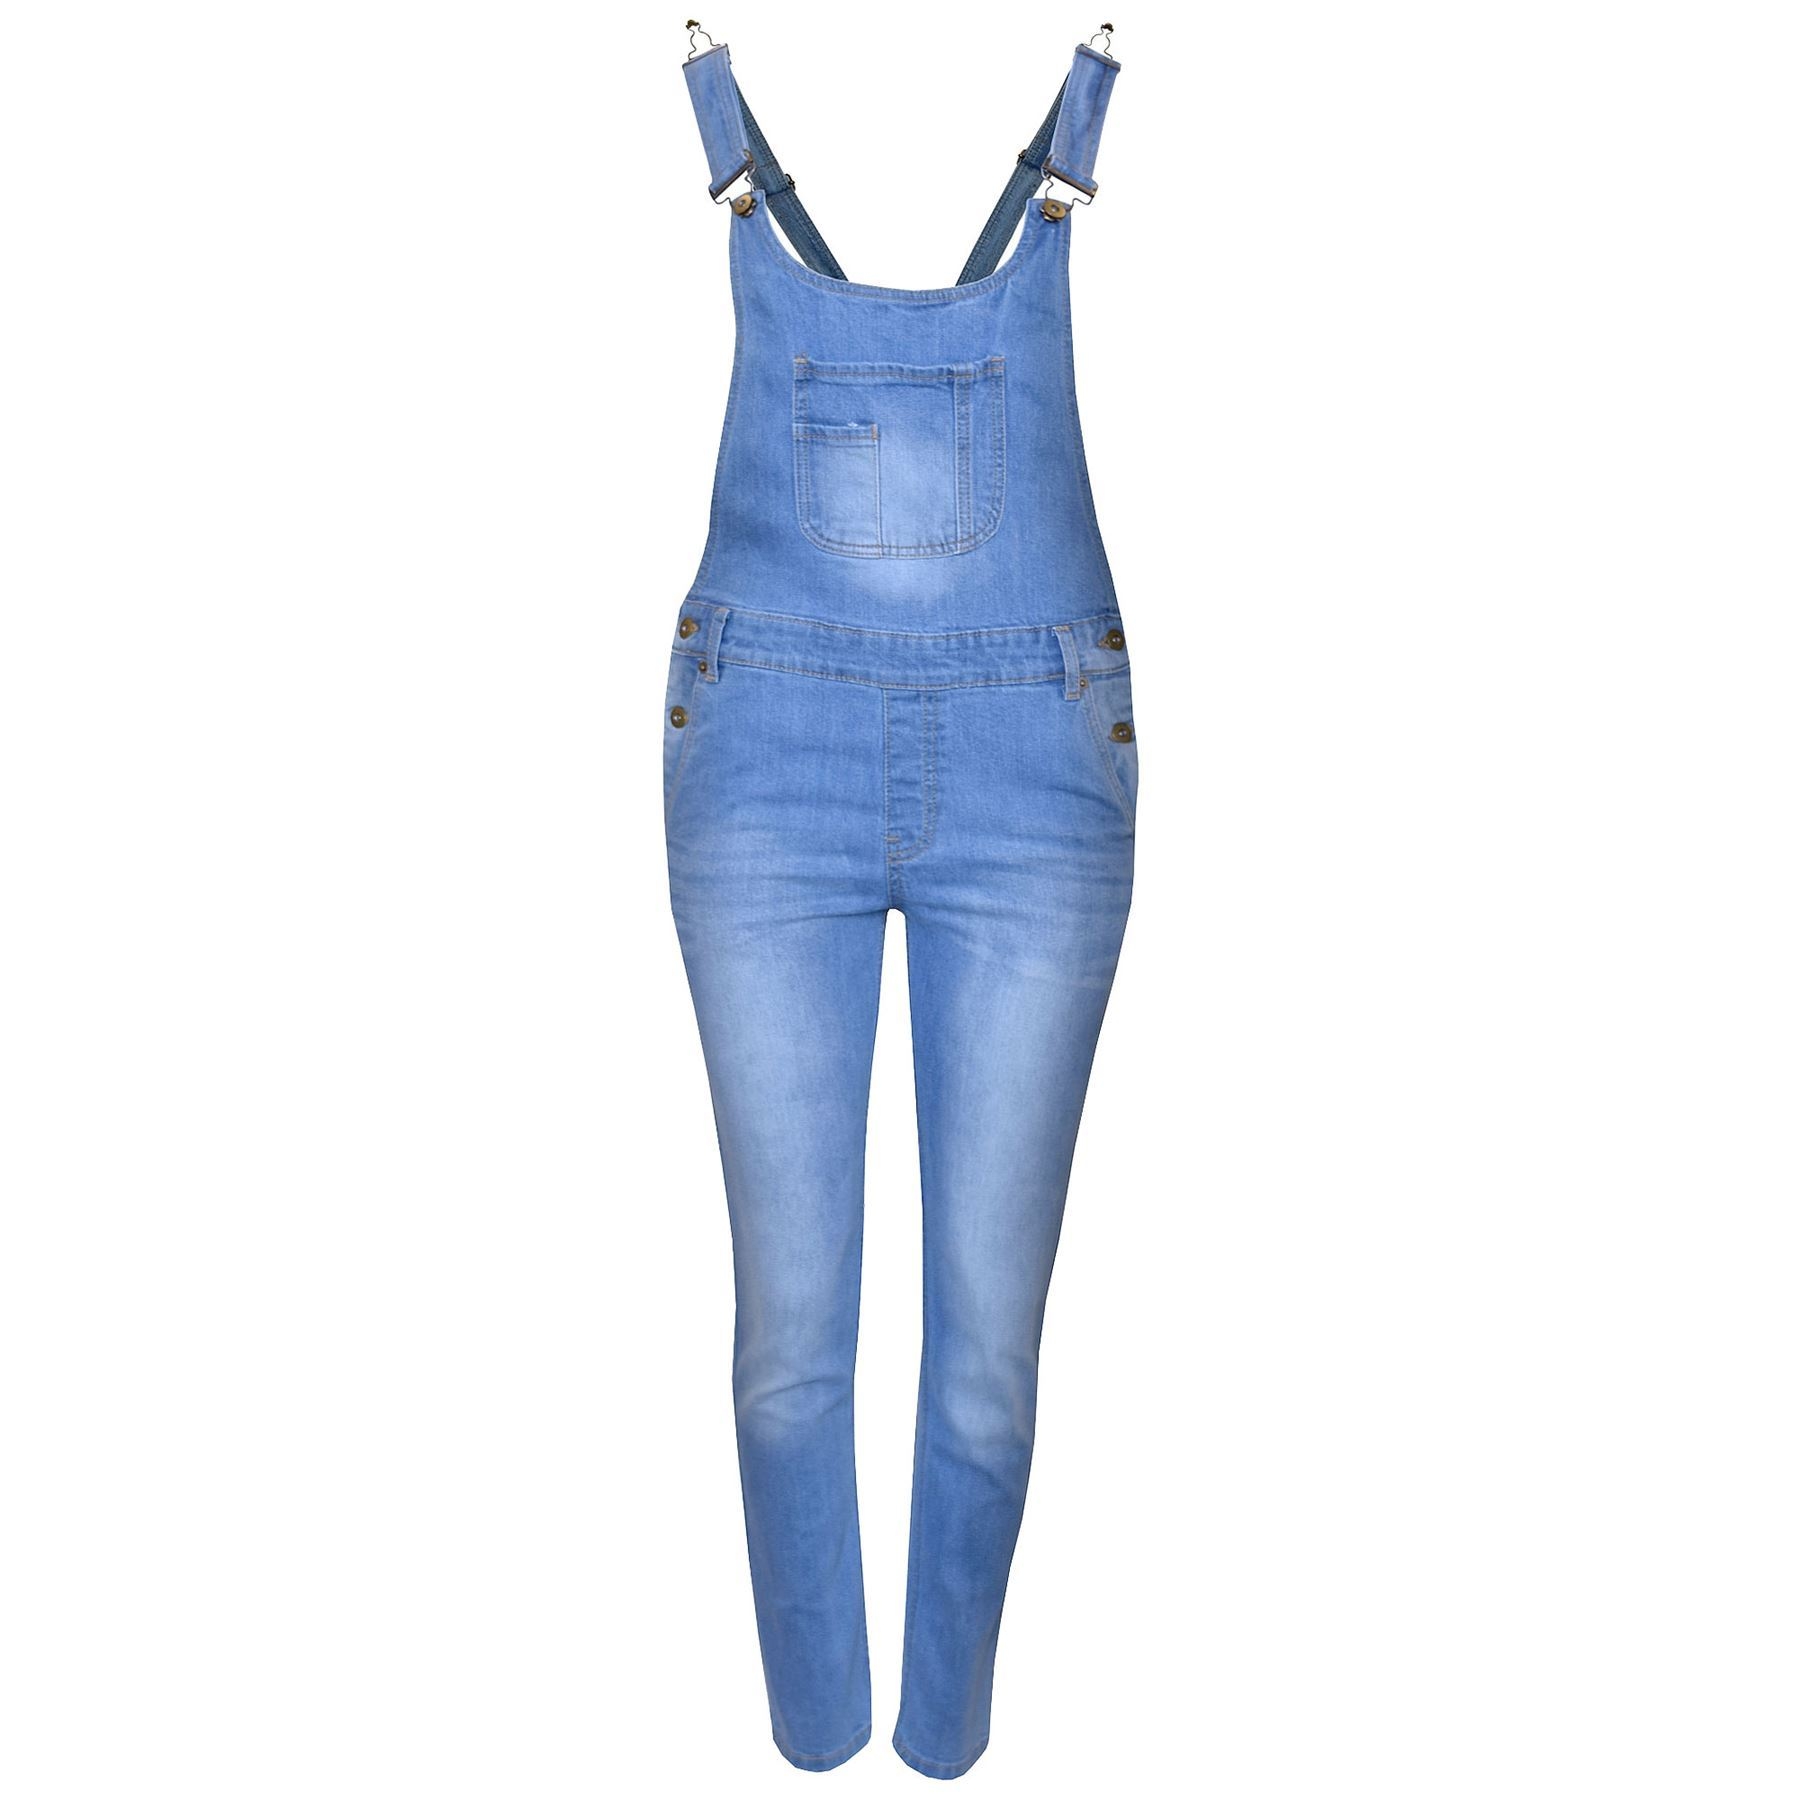 Kids Girls Denim Stretch Dungaree Jumpsuit Playsuit All In One Jeans 7-13 Years | EBay